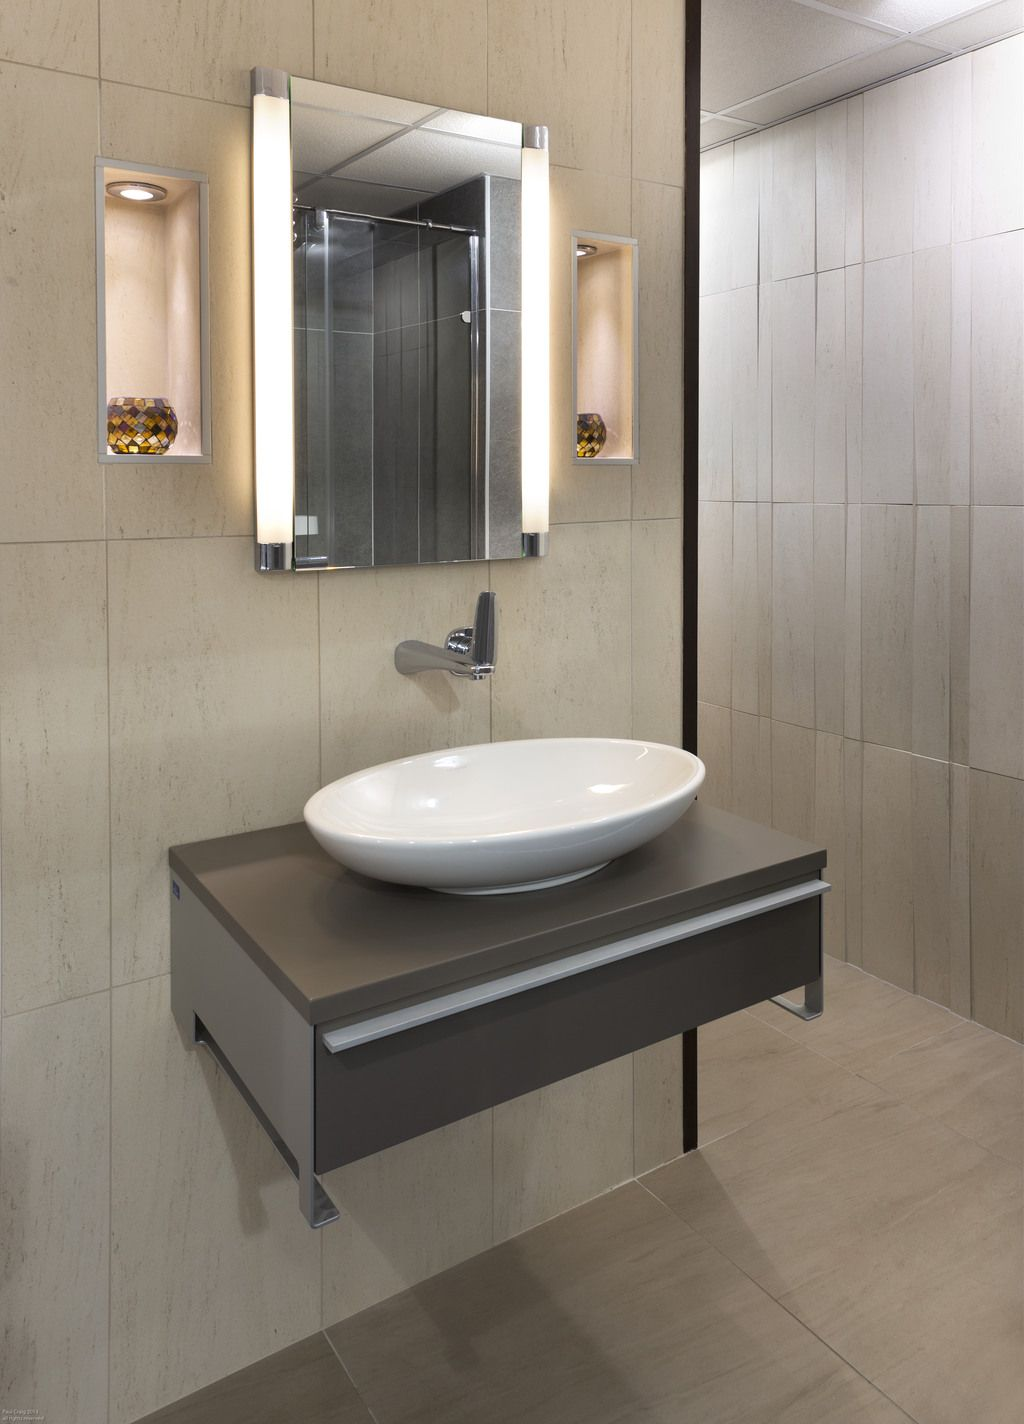 Villeroy U0026 Boch Display Featuring A Vanity Unit From The Shape Range  Together With An Oval